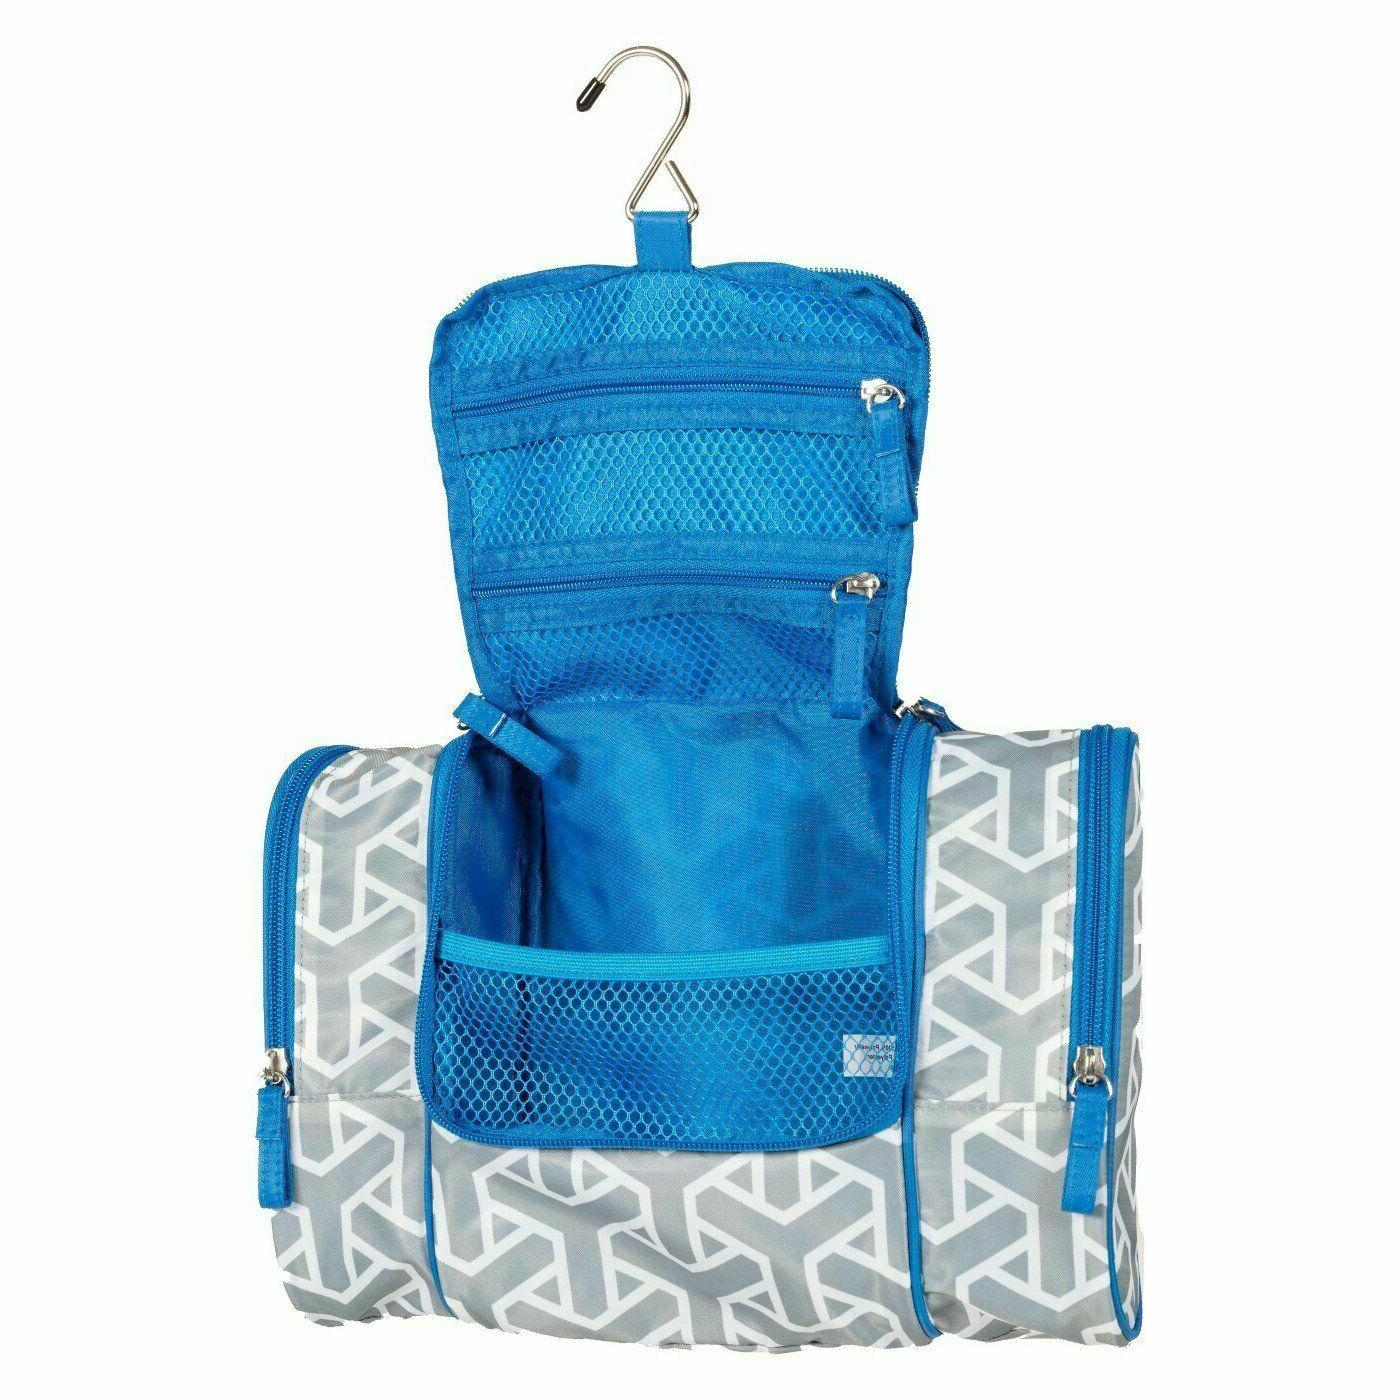 Flat Pack Toiletry - Toiletry / Toiletry Travel Accessory